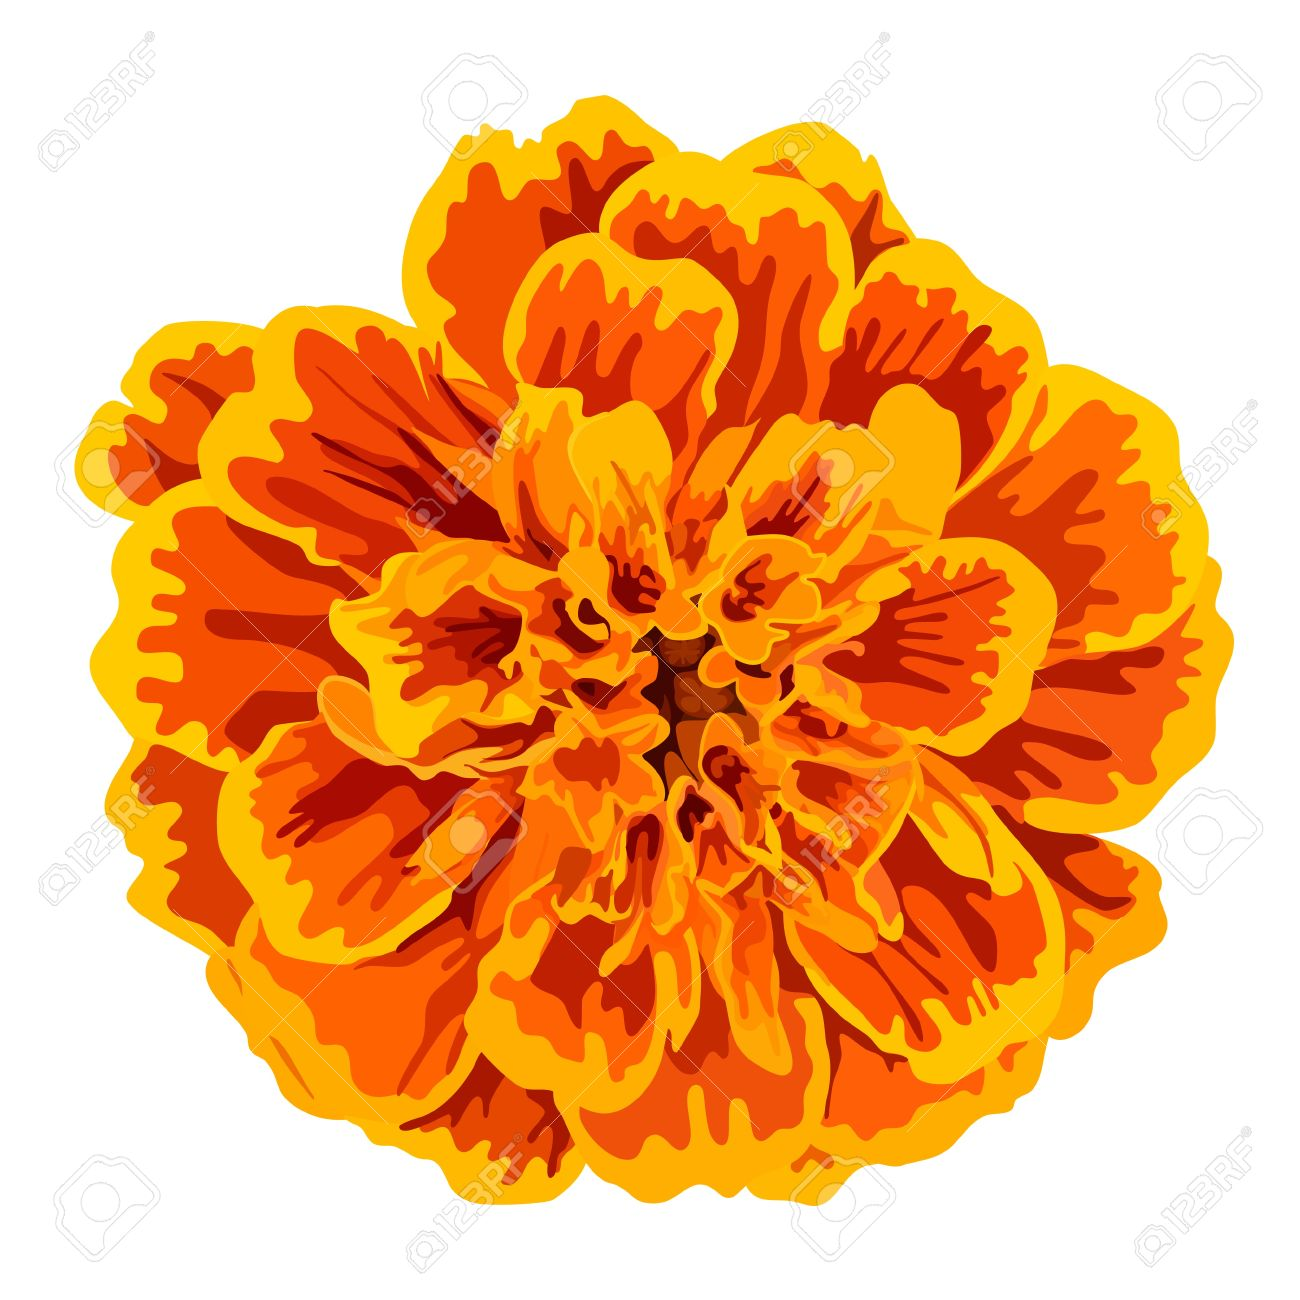 Orange Marigolds Clip Art.